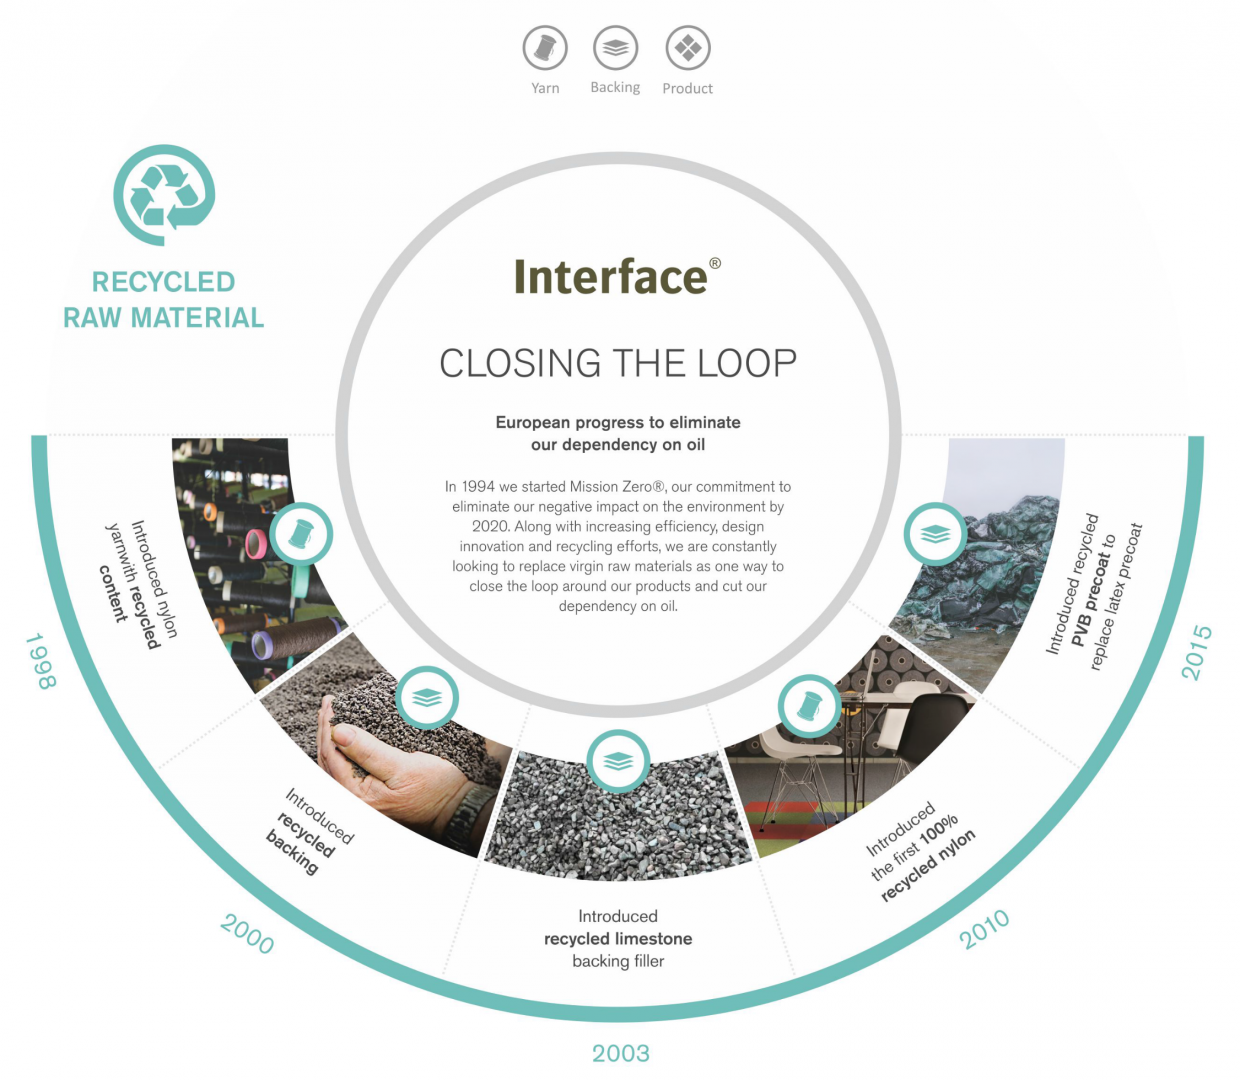 Closing the Loop - European Progress to Eliminate Dependency on Oil - Recycled Raw Material